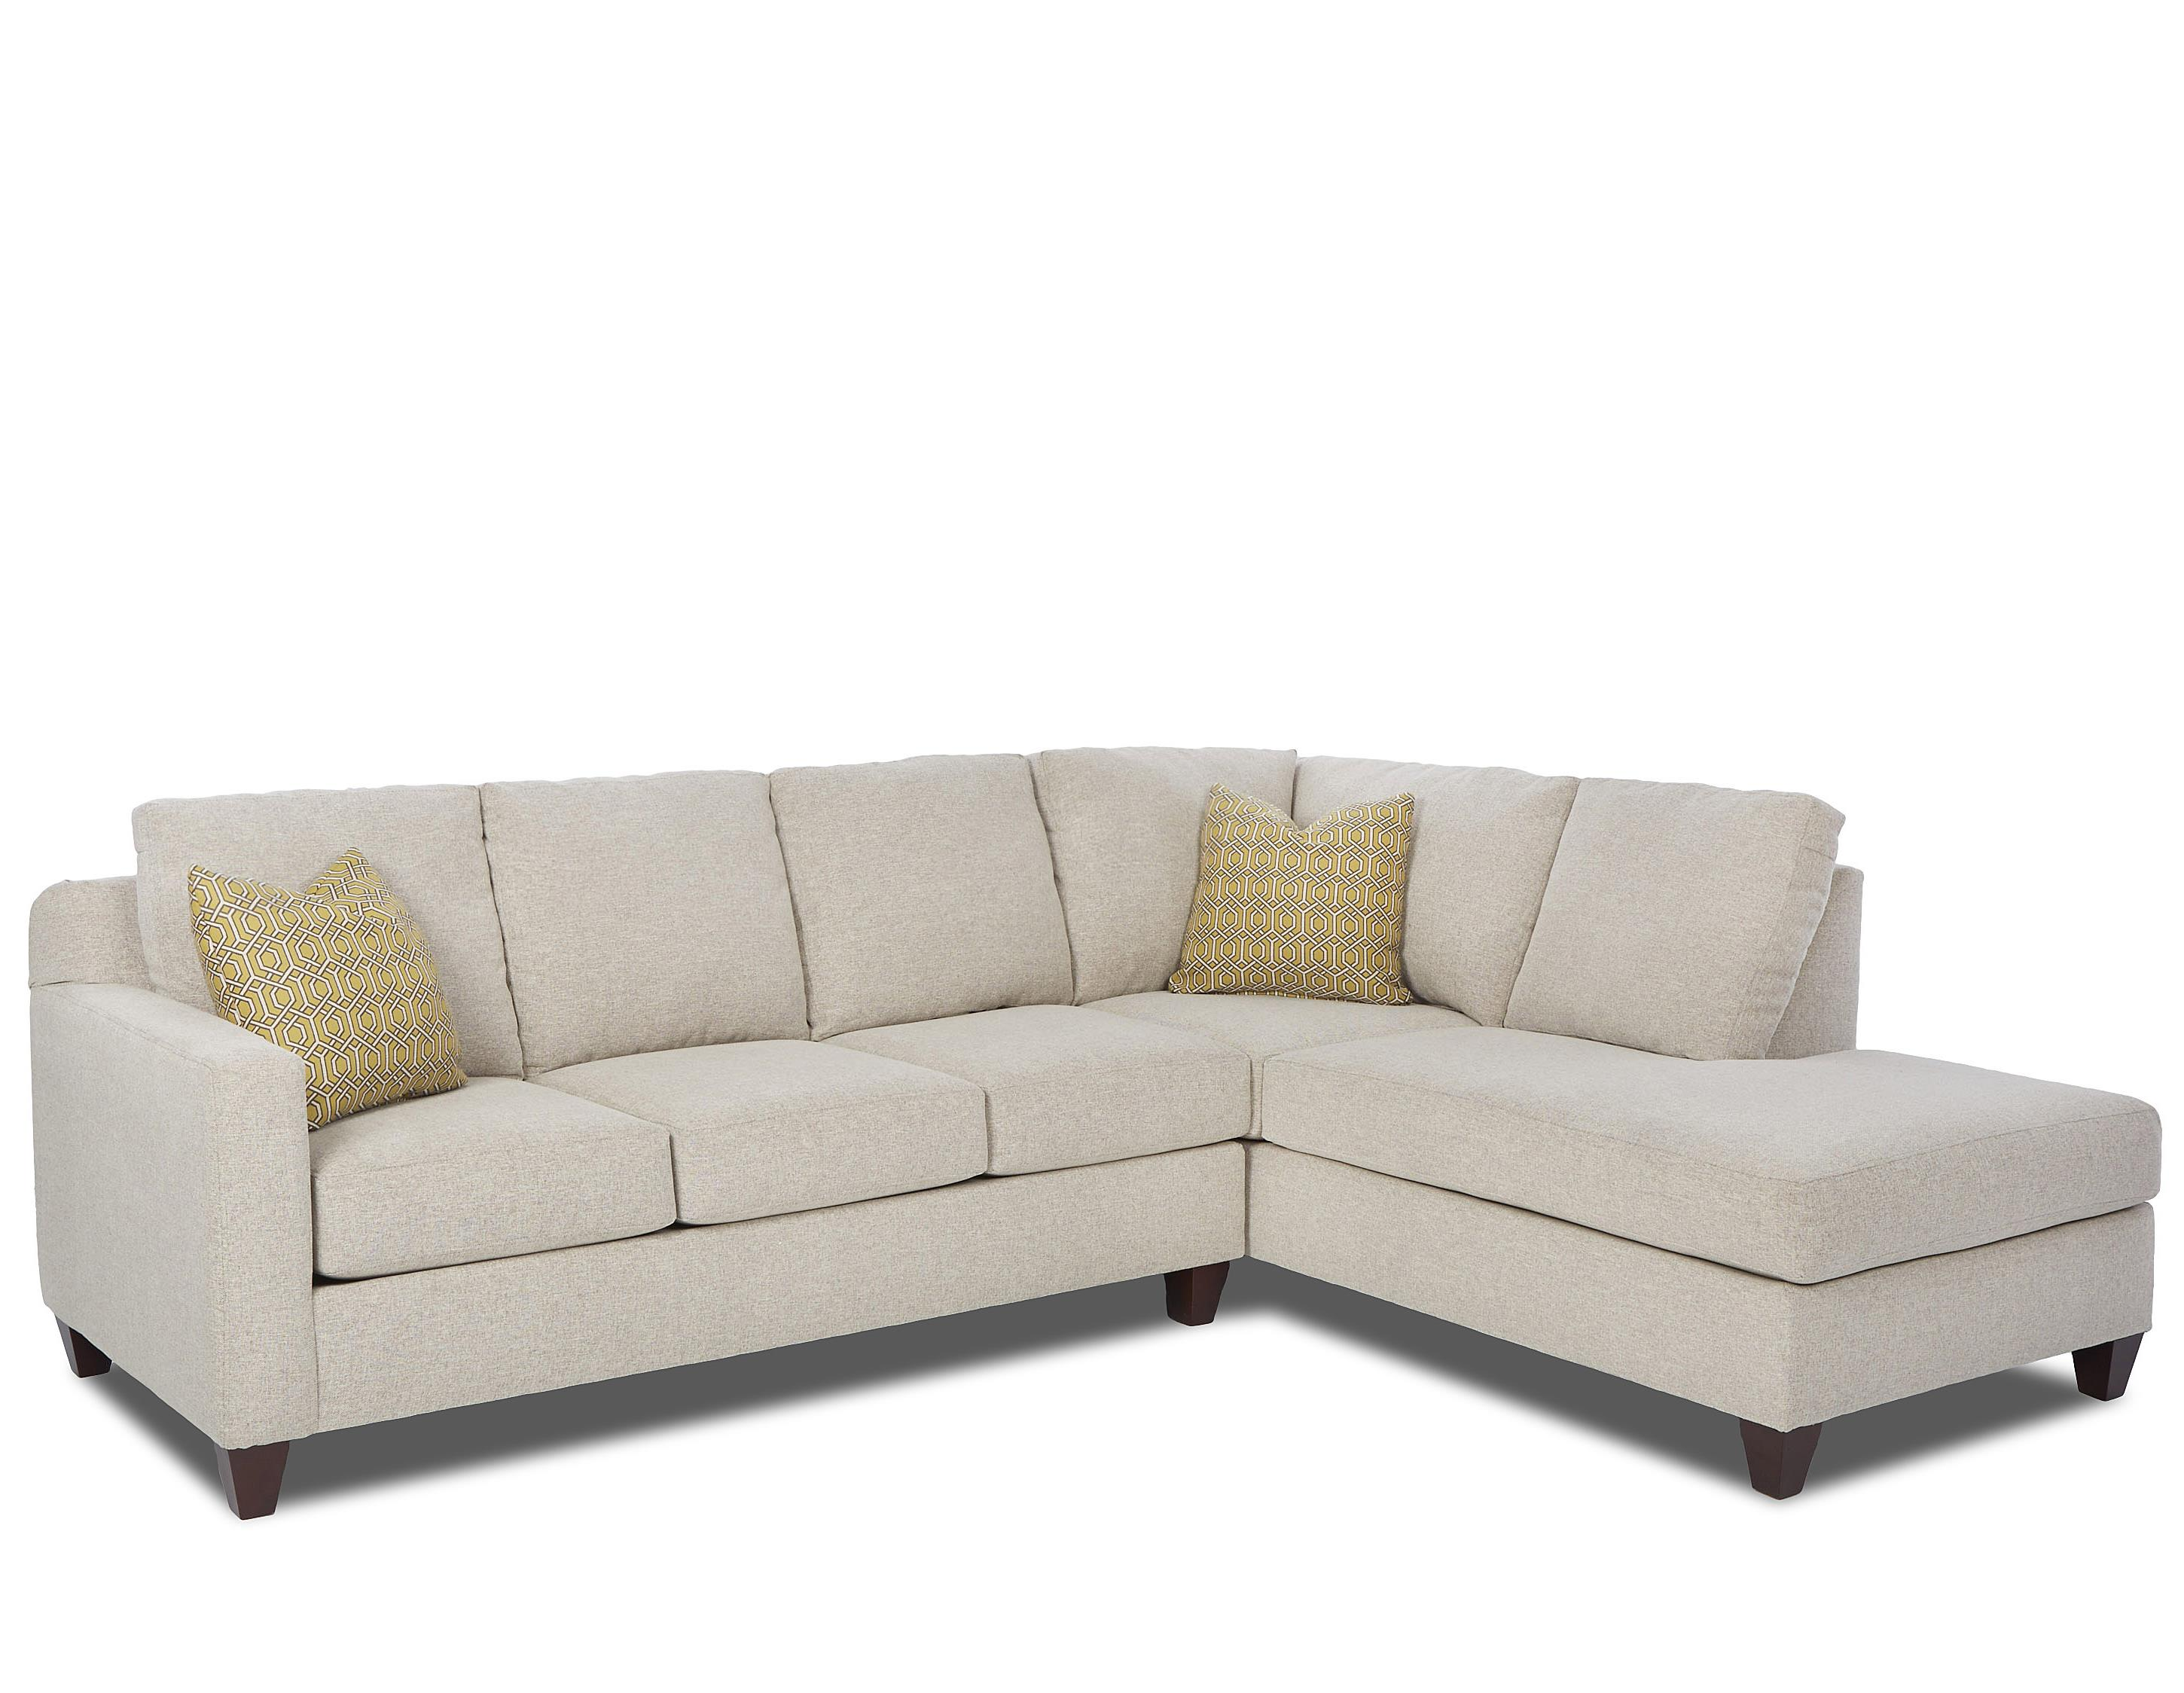 Contemporary 2-Piece Sectional with Right Arm Facing Sofa Chaise  sc 1 st  Wolf Furniture : right arm facing sectional - Sectionals, Sofas & Couches